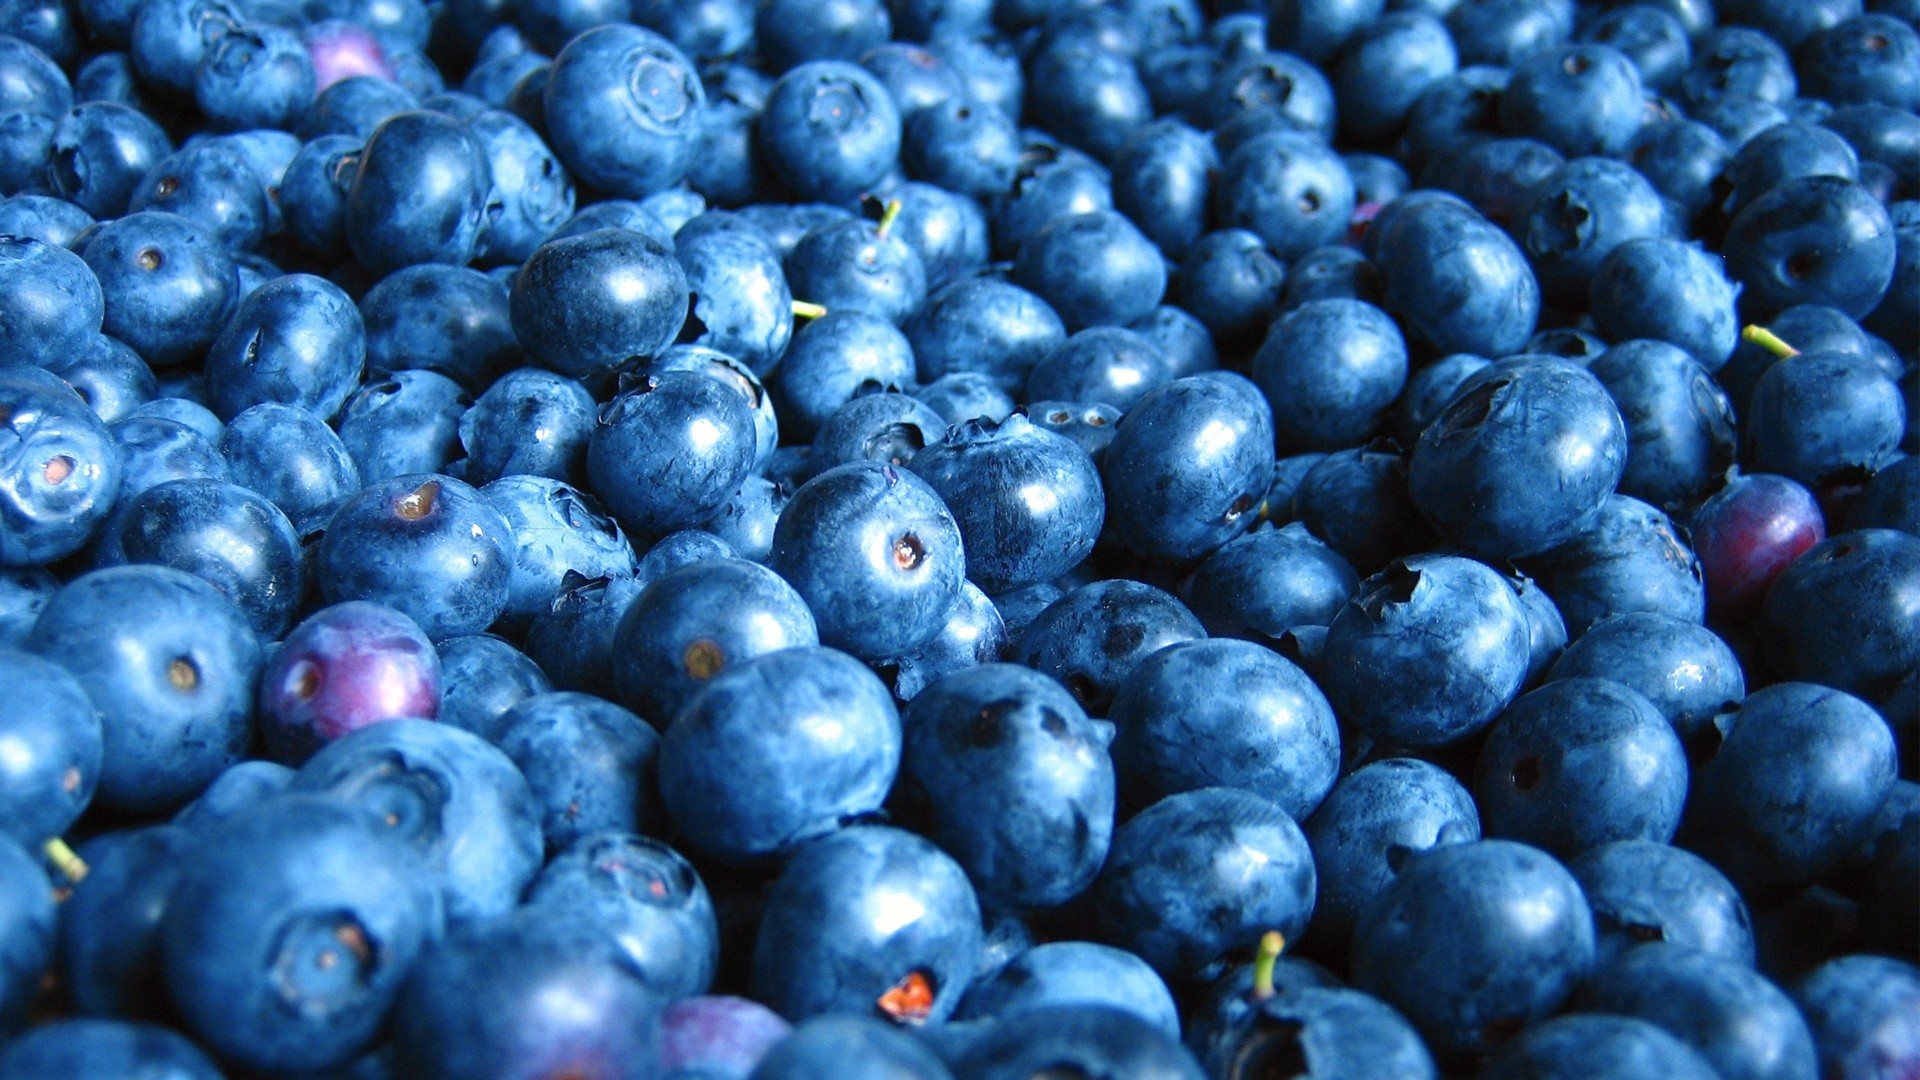 Blueberries .jpg